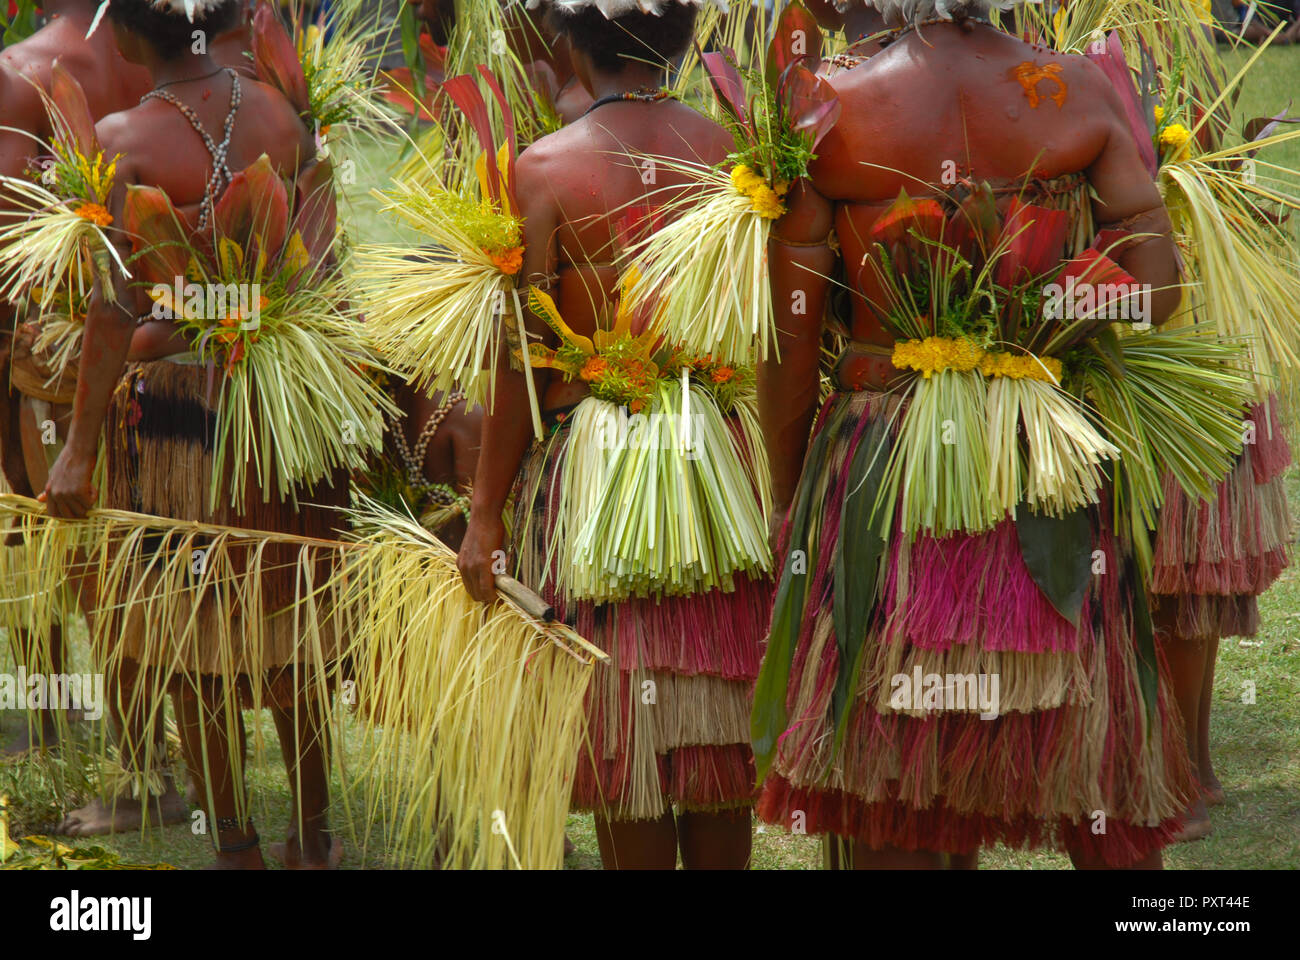 Colourfully dressed and face painted women dancing as part of a Sing Sing in Madang, Papua New Guinea. - Stock Image